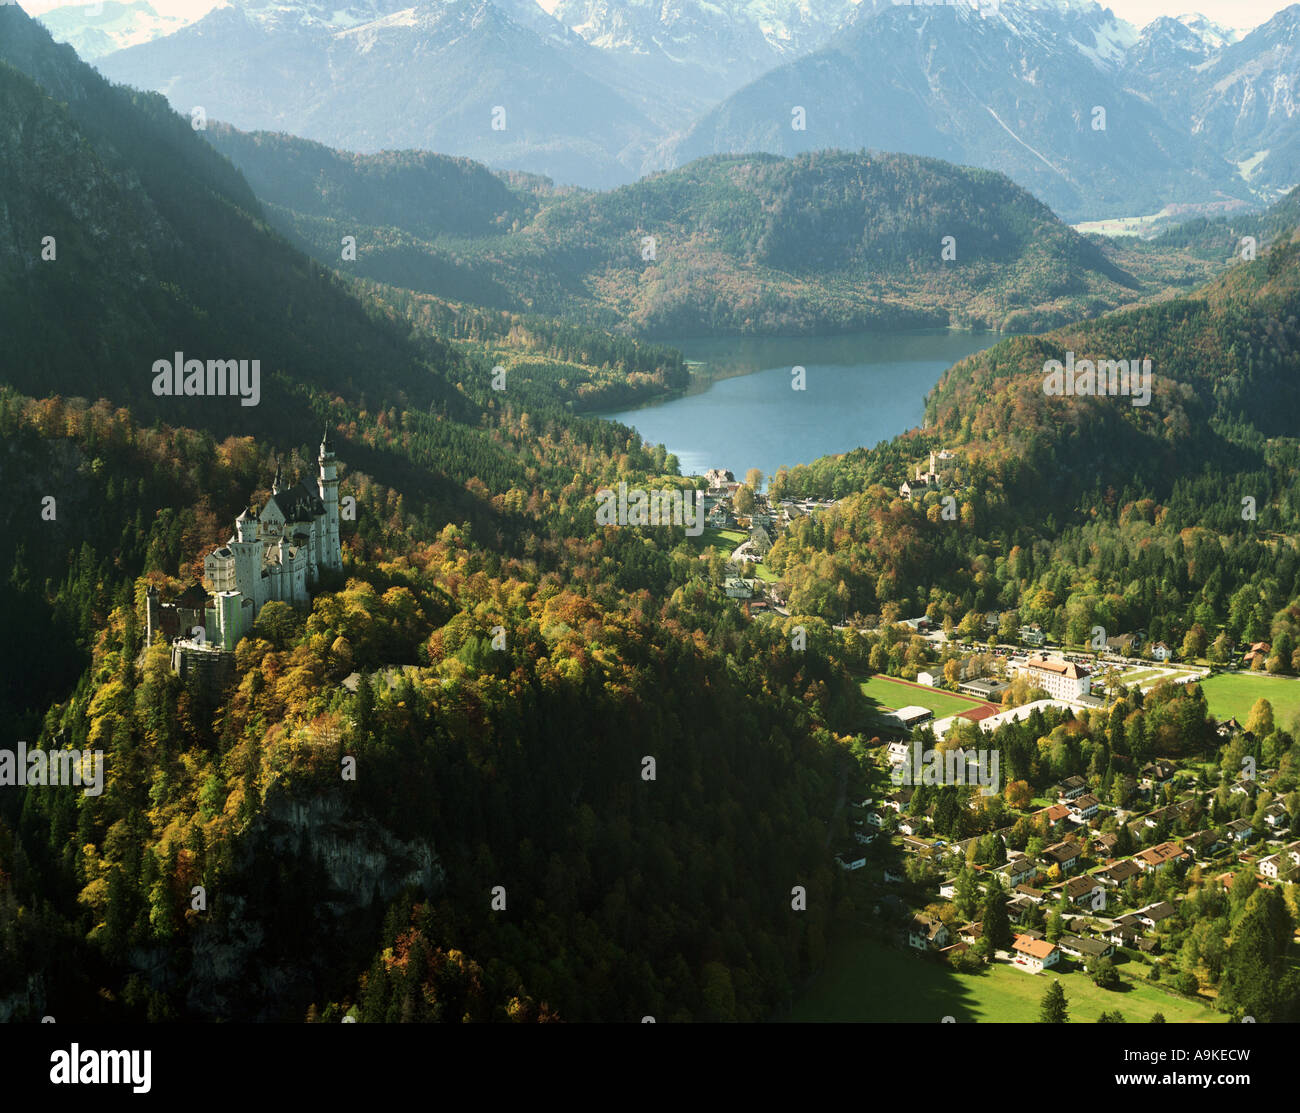 Neuschwanstein Castle, build by King Ludwig II of Bavaria, Alpsee in the background, Germany, Bavaria, Allgaeu, - Stock Image